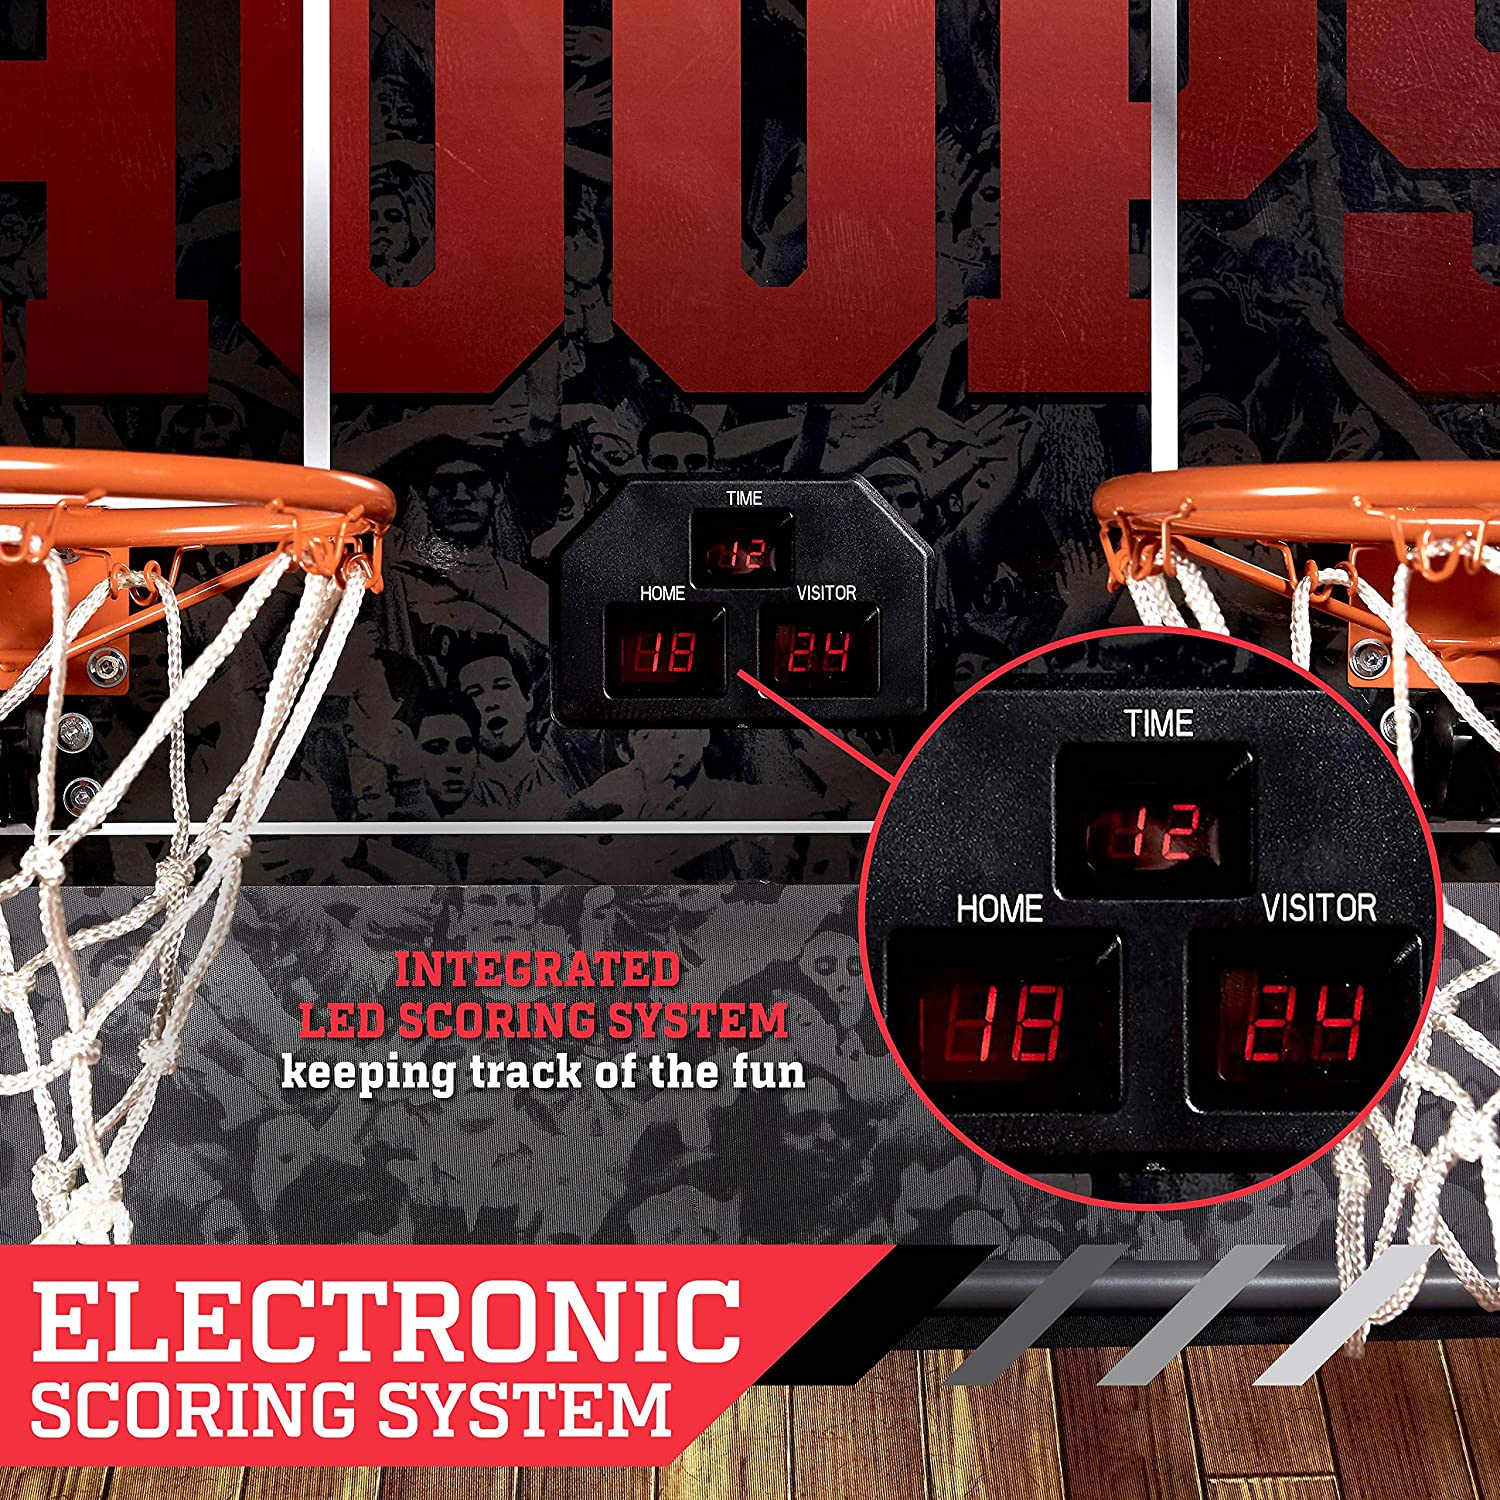 Espn Ez Fold Indoor Basketball Game For 2 Players With Led Beat Box Wiring Diagram Scoring And Arcade Sounds 6 Piece Set Sports Outdoors